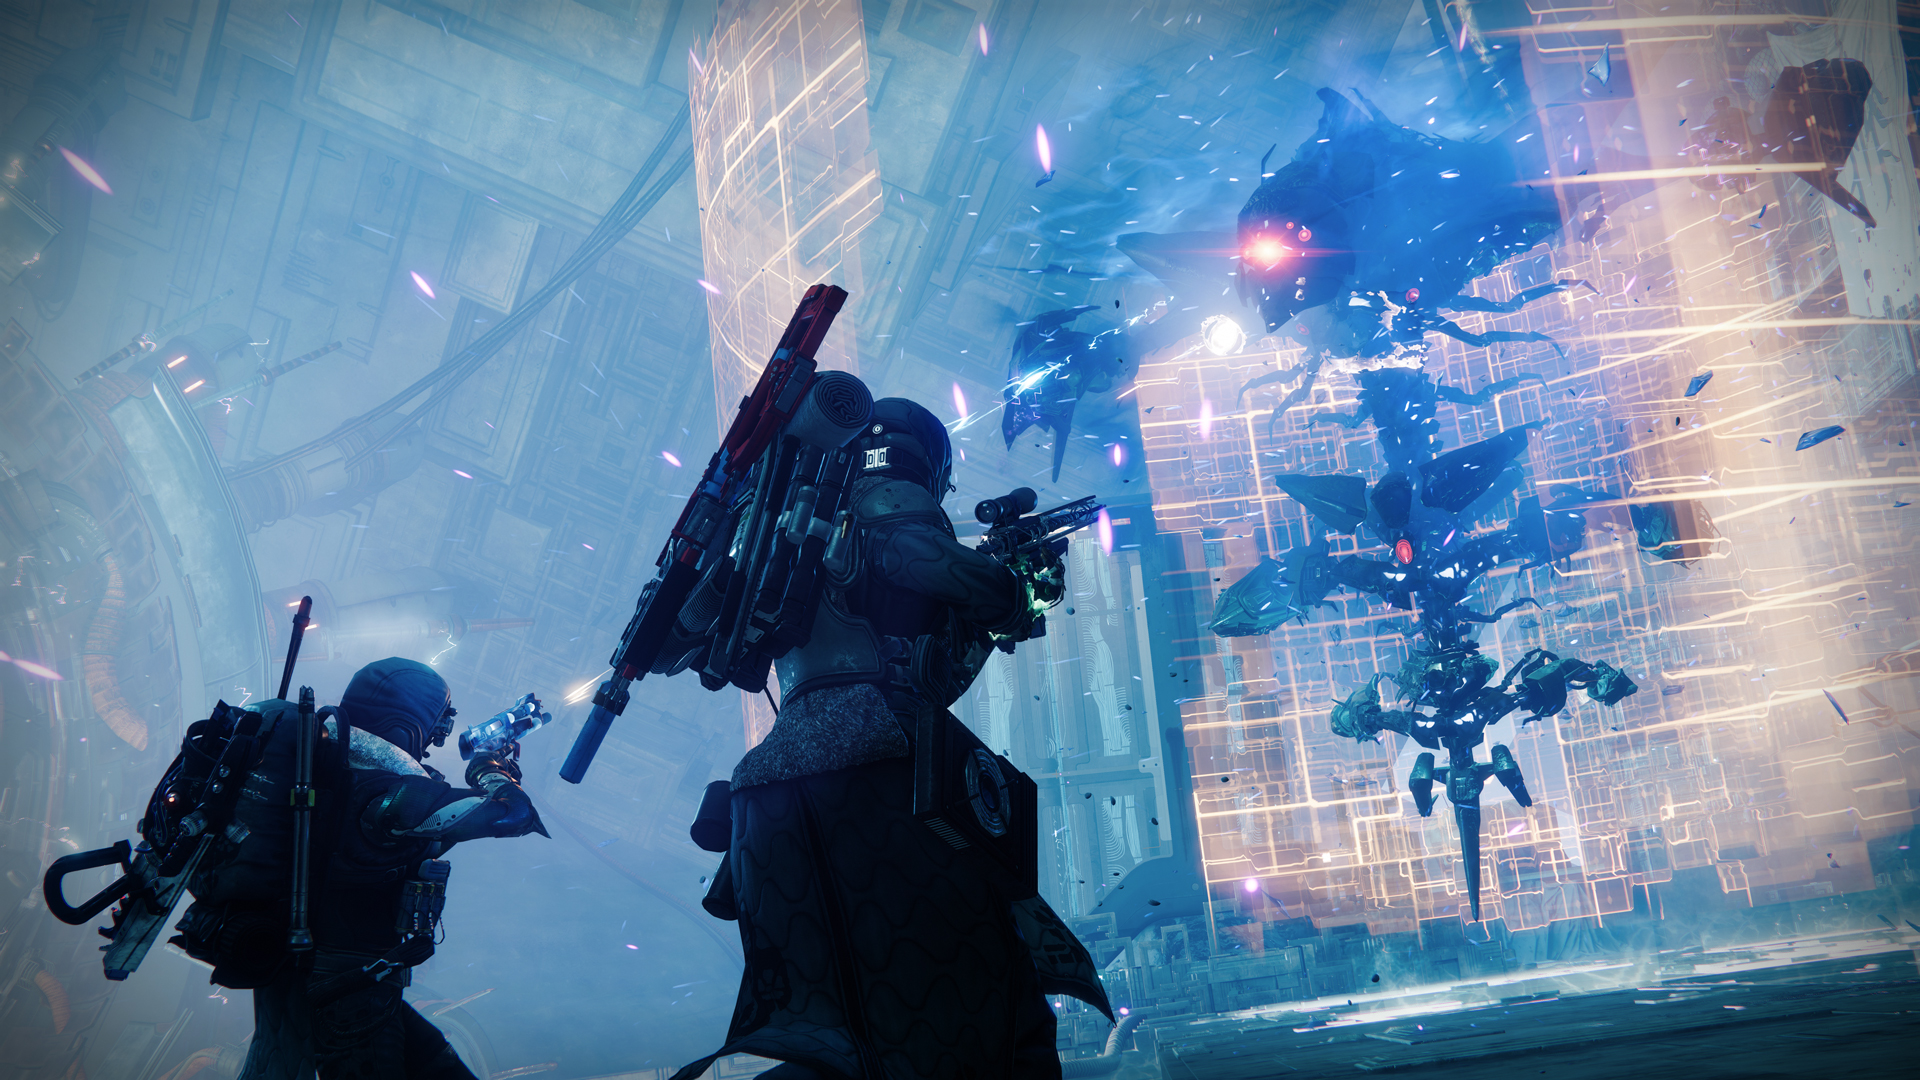 Bungie's growth plans: Destiny maker will expand Seattle-area HQ and release new IP by 2025